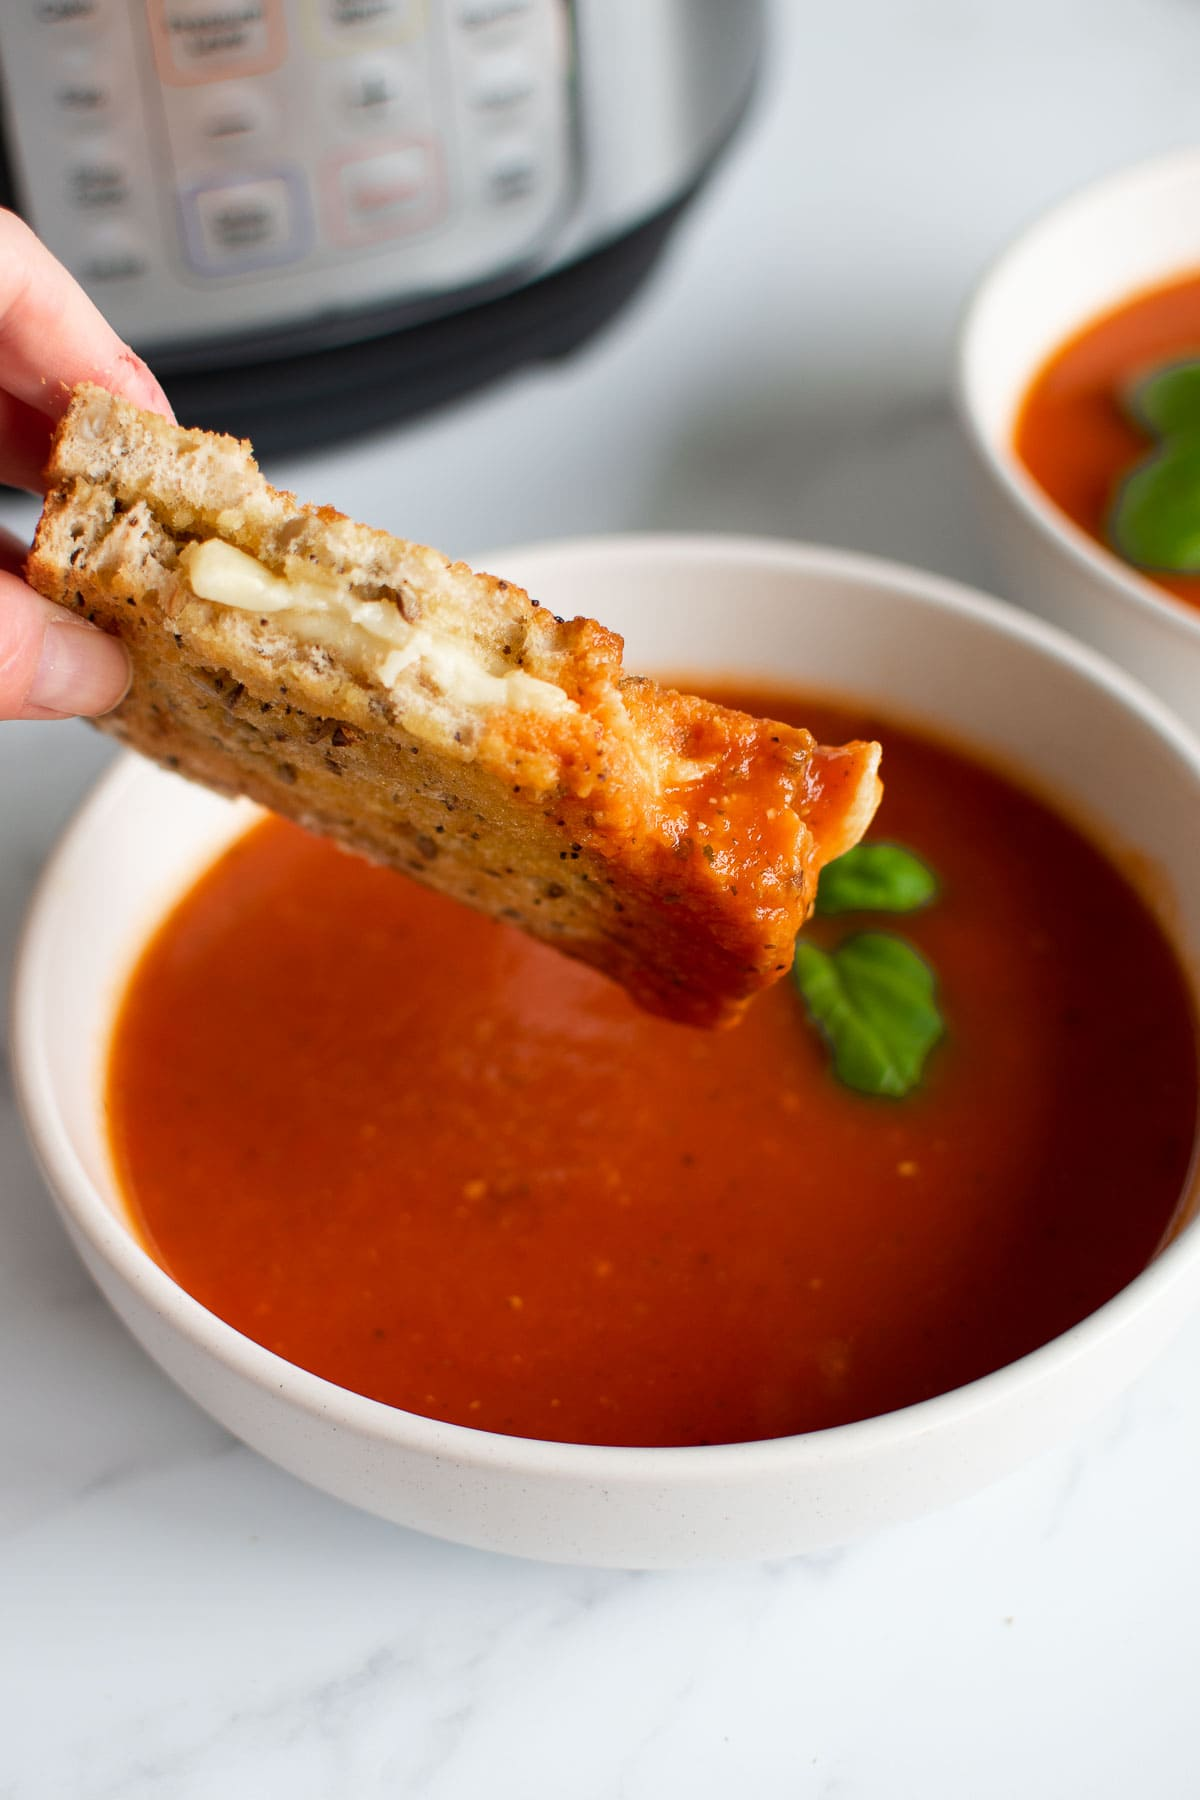 Grilled cheese sandwich dipped in tomato soup.